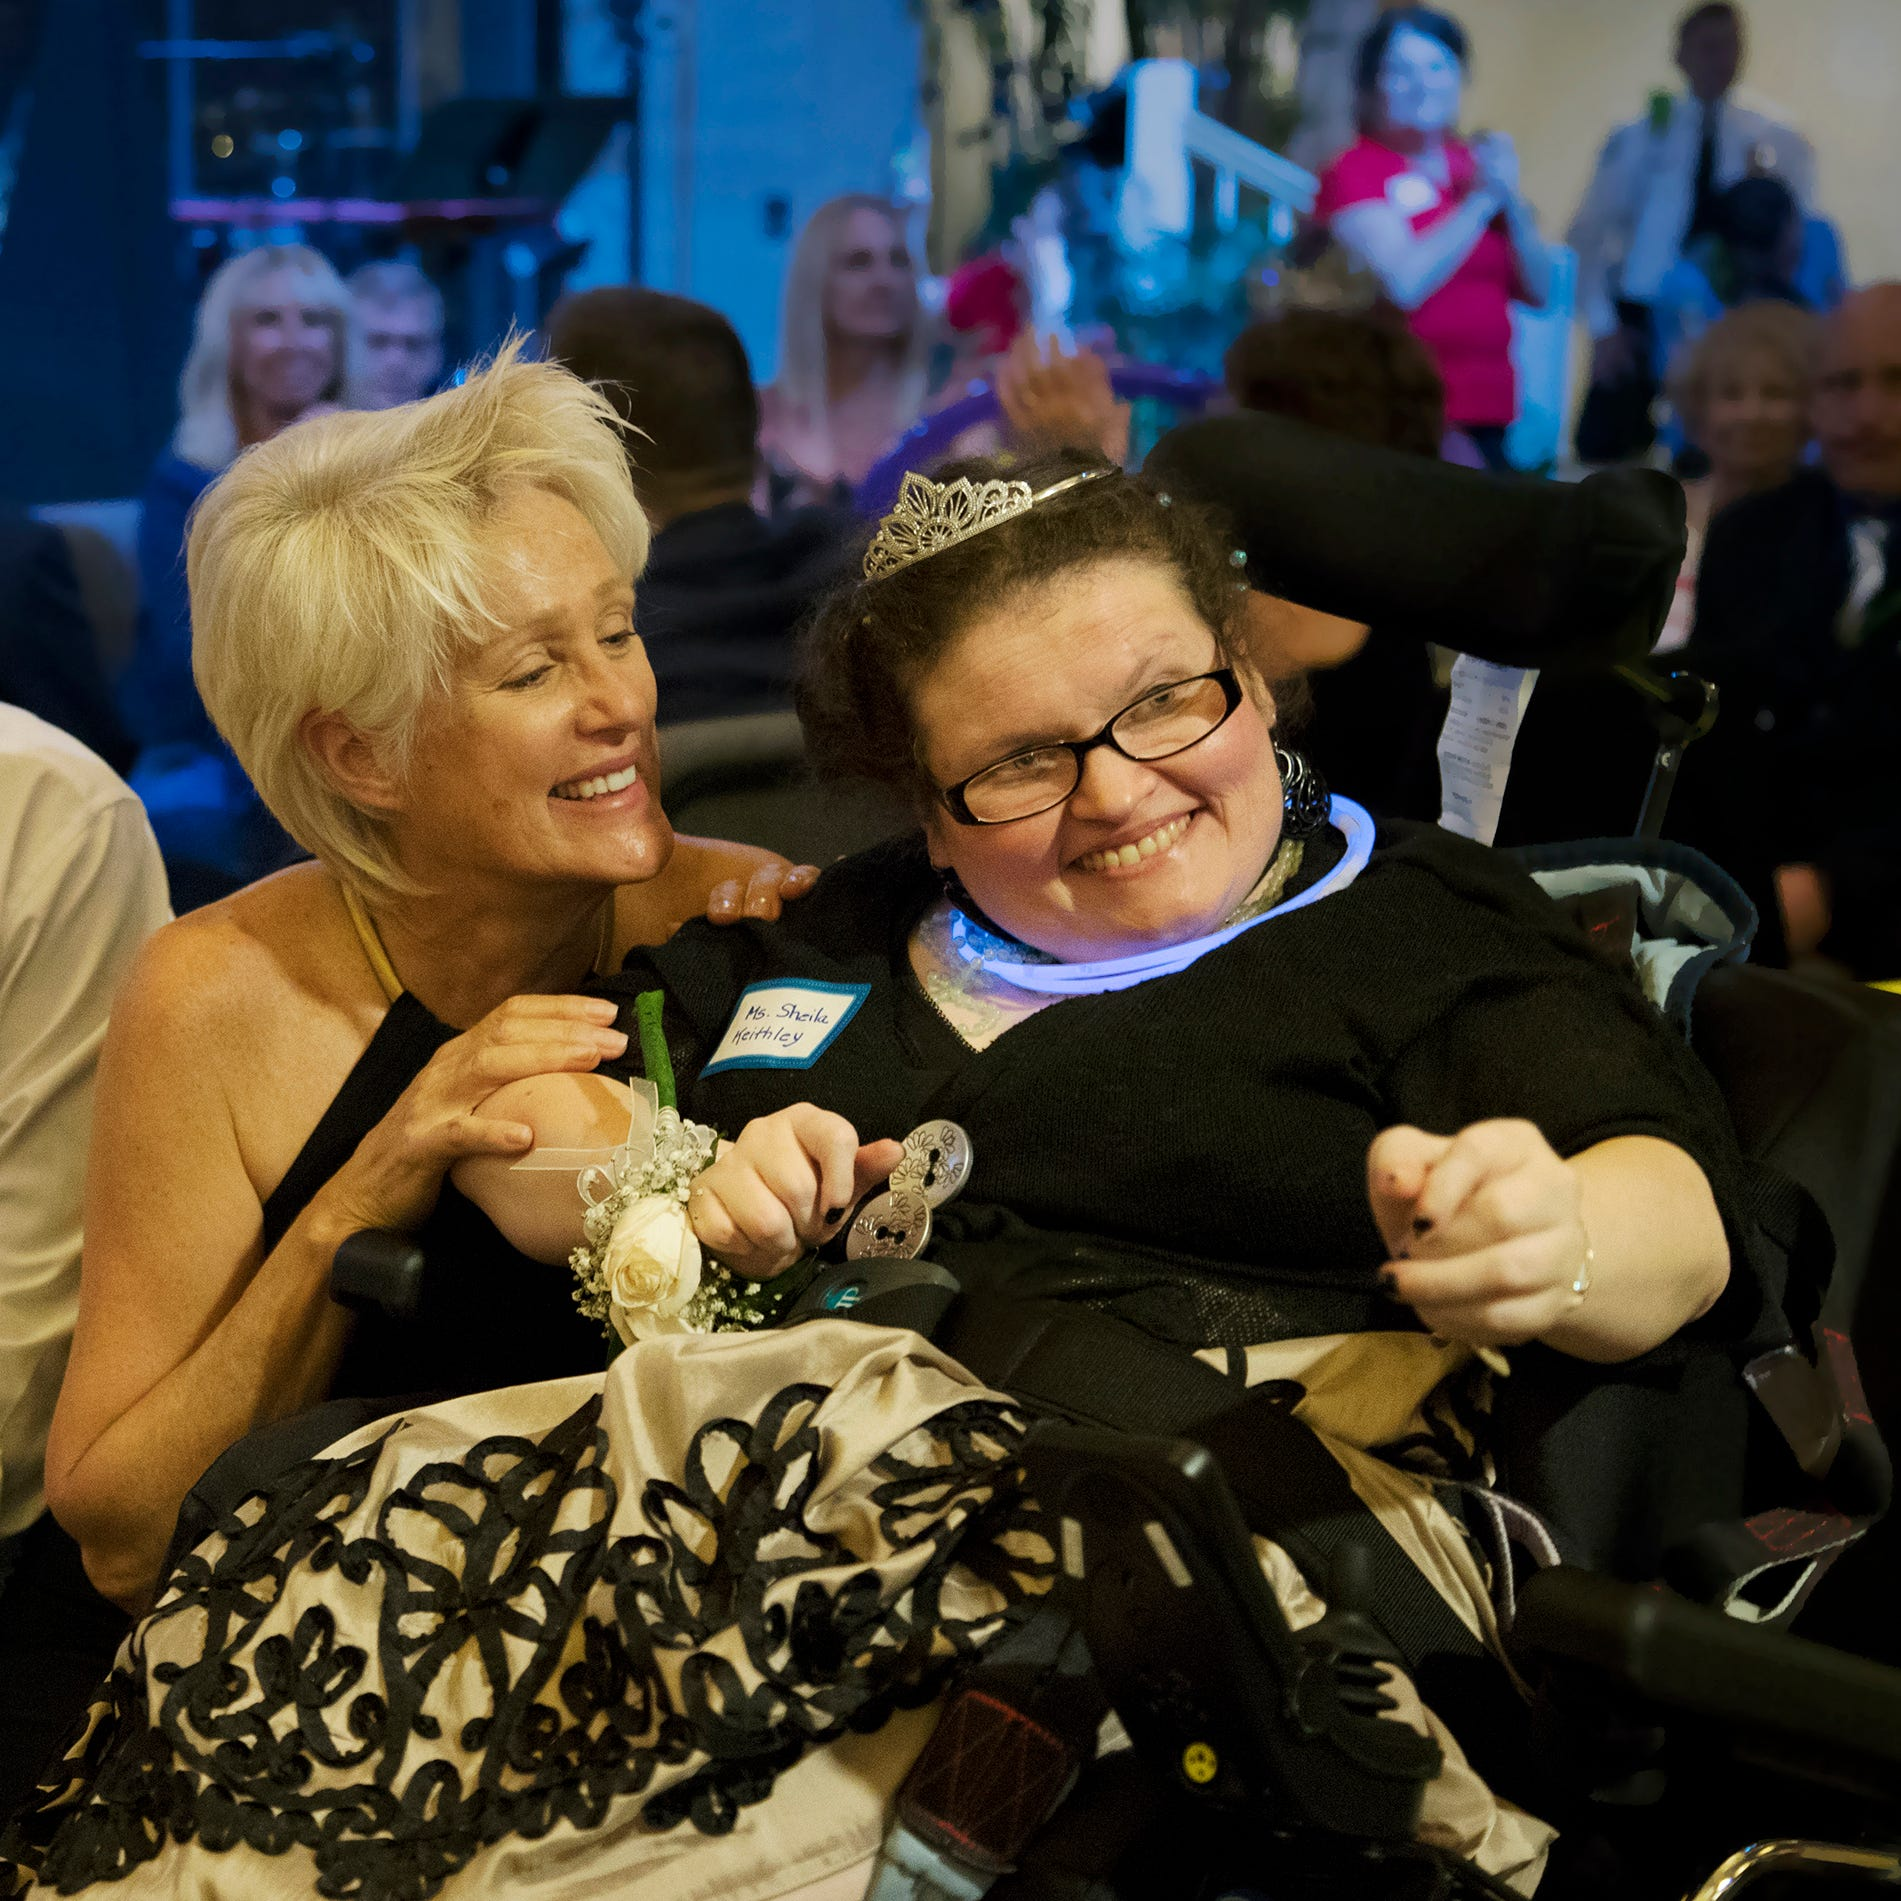 Tim Tebow's 'Night to Shine' shows special-needs population 'you matter'